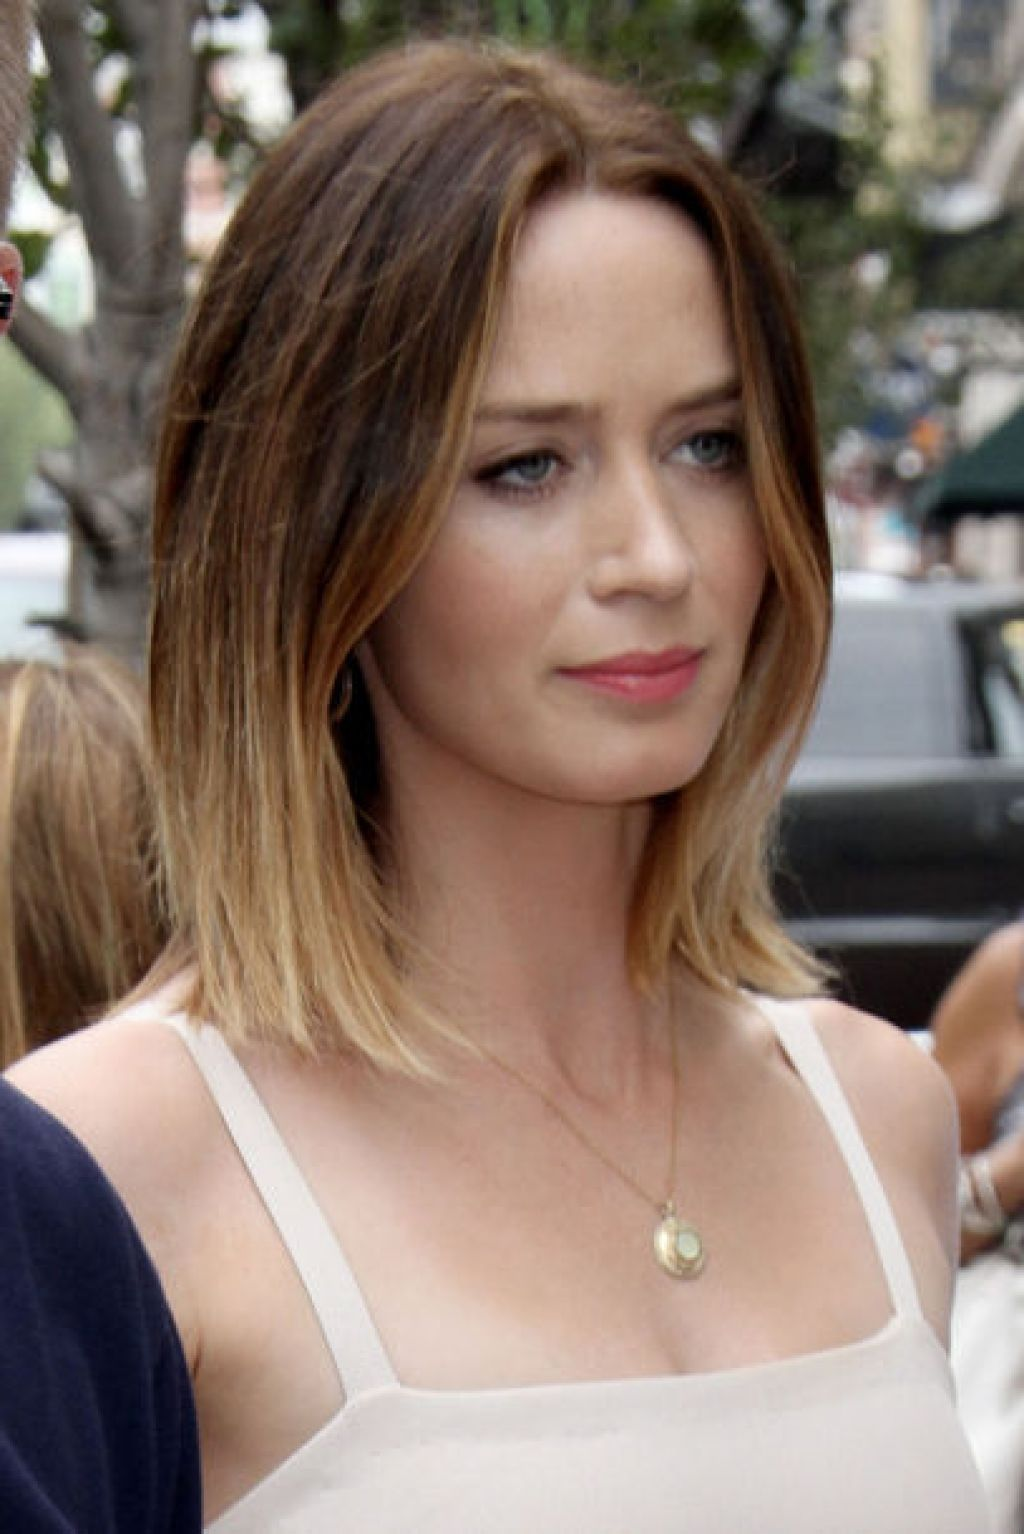 Short blunt bob hairstyle with bangs short hairstyles - Emily Blunt S Ombre Bob